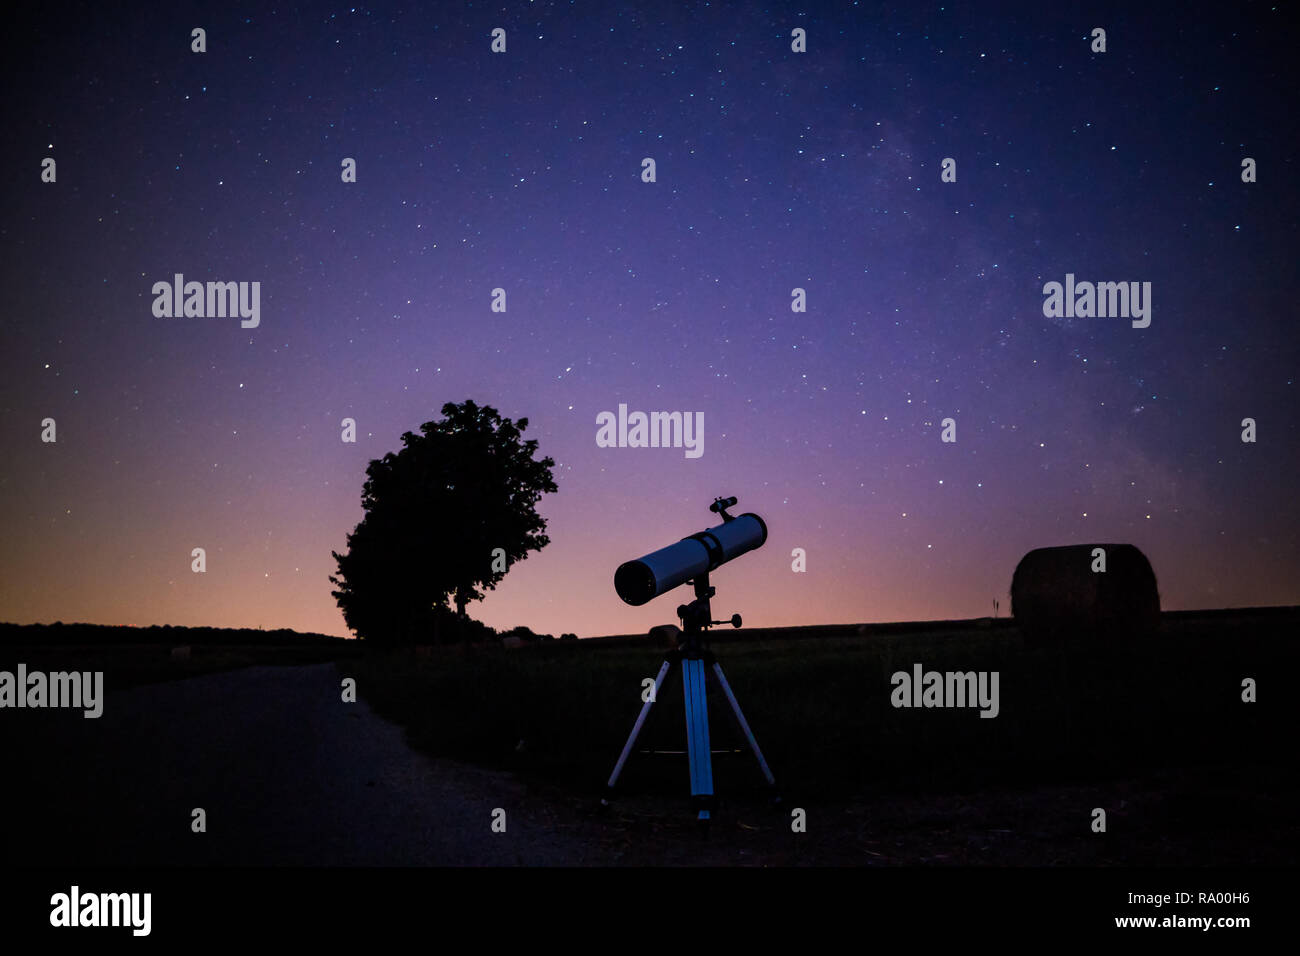 Look in the stars - Stock Image